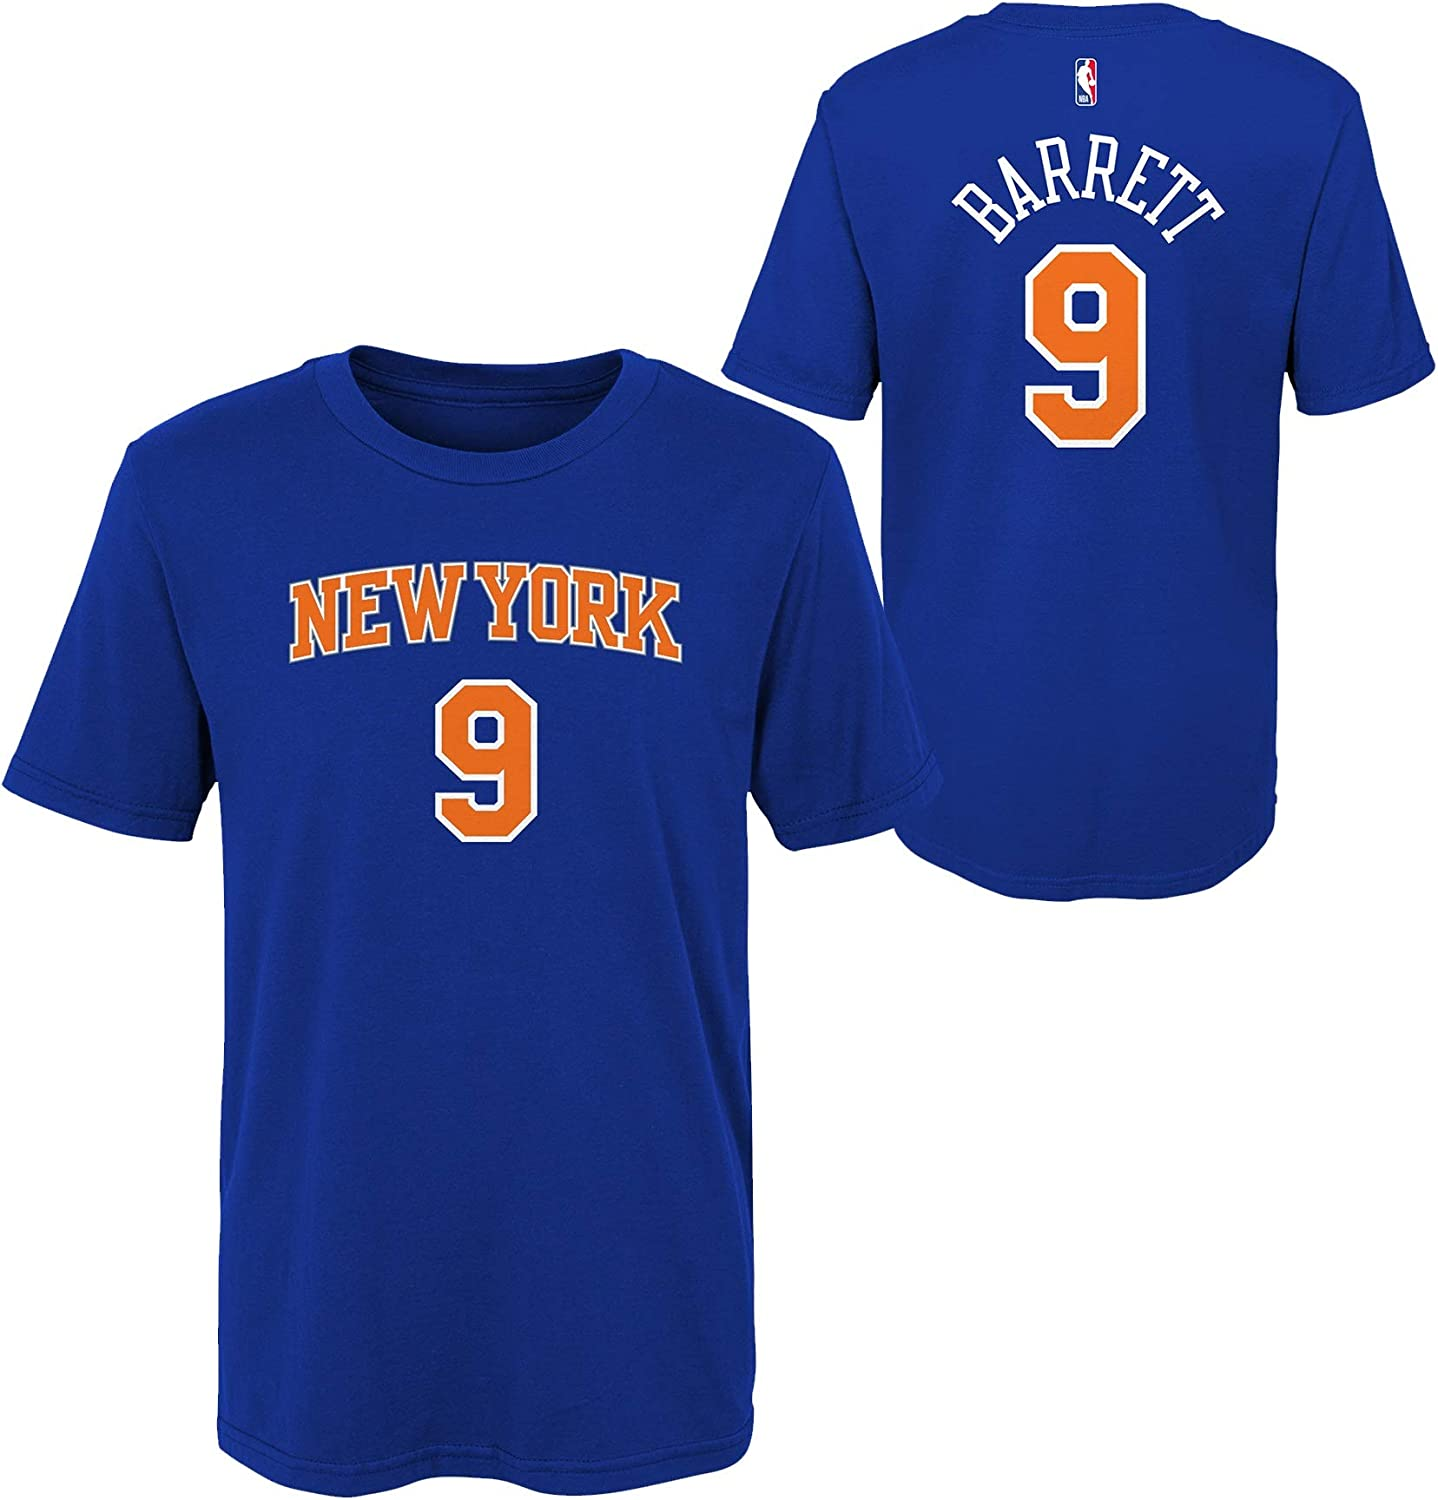 Outerstuff RJ Barrett New York Knicks #9 Royal Blue Youth Player Name /& Number T-Shirt